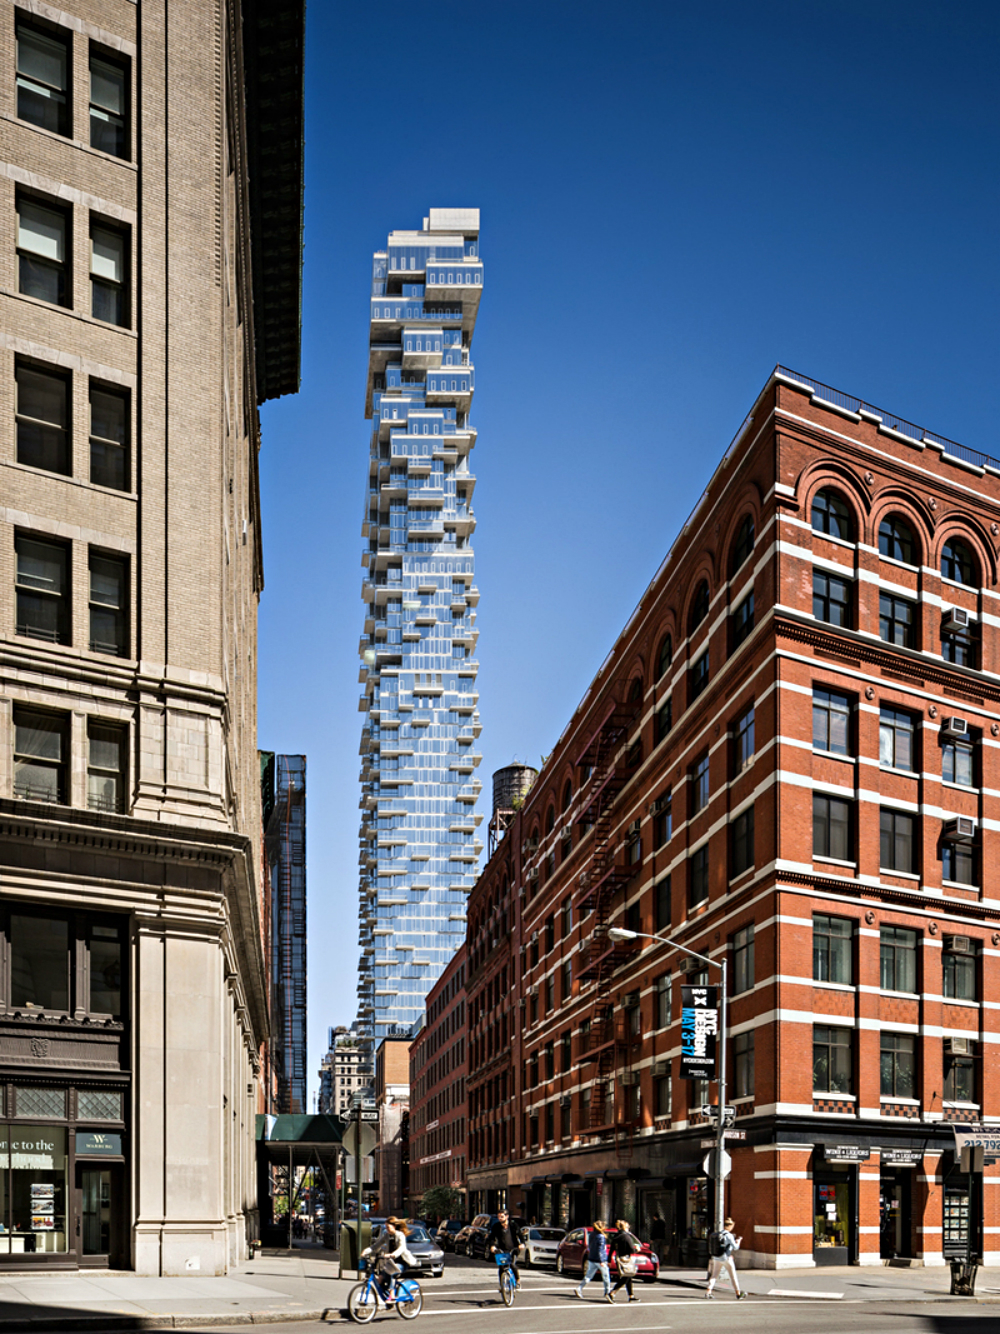 Herzog Amp De Meuron Designs Colossal Jenga Tower In New